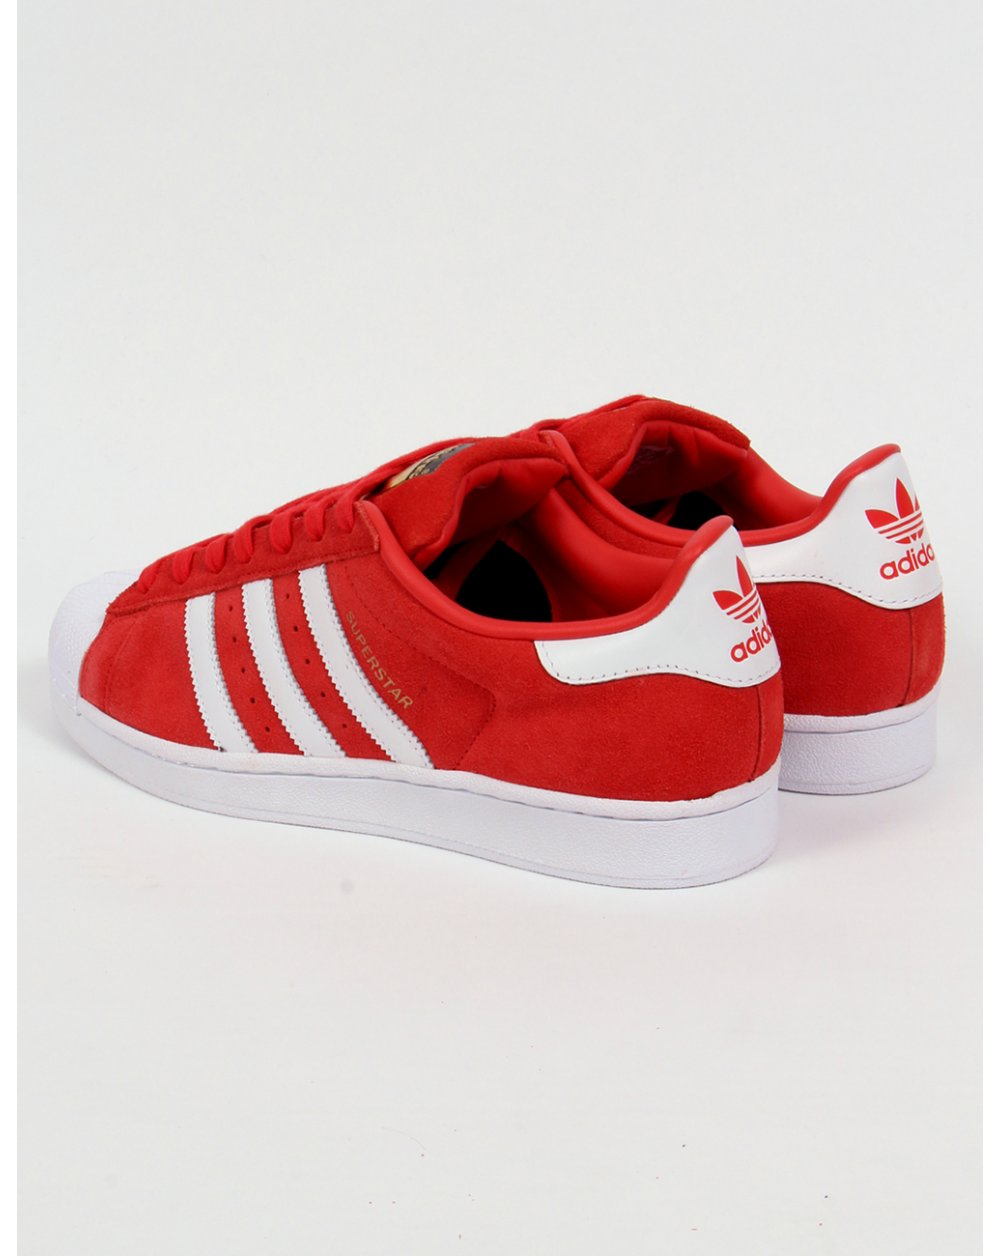 Adidas Superstar Suede Red White Sale